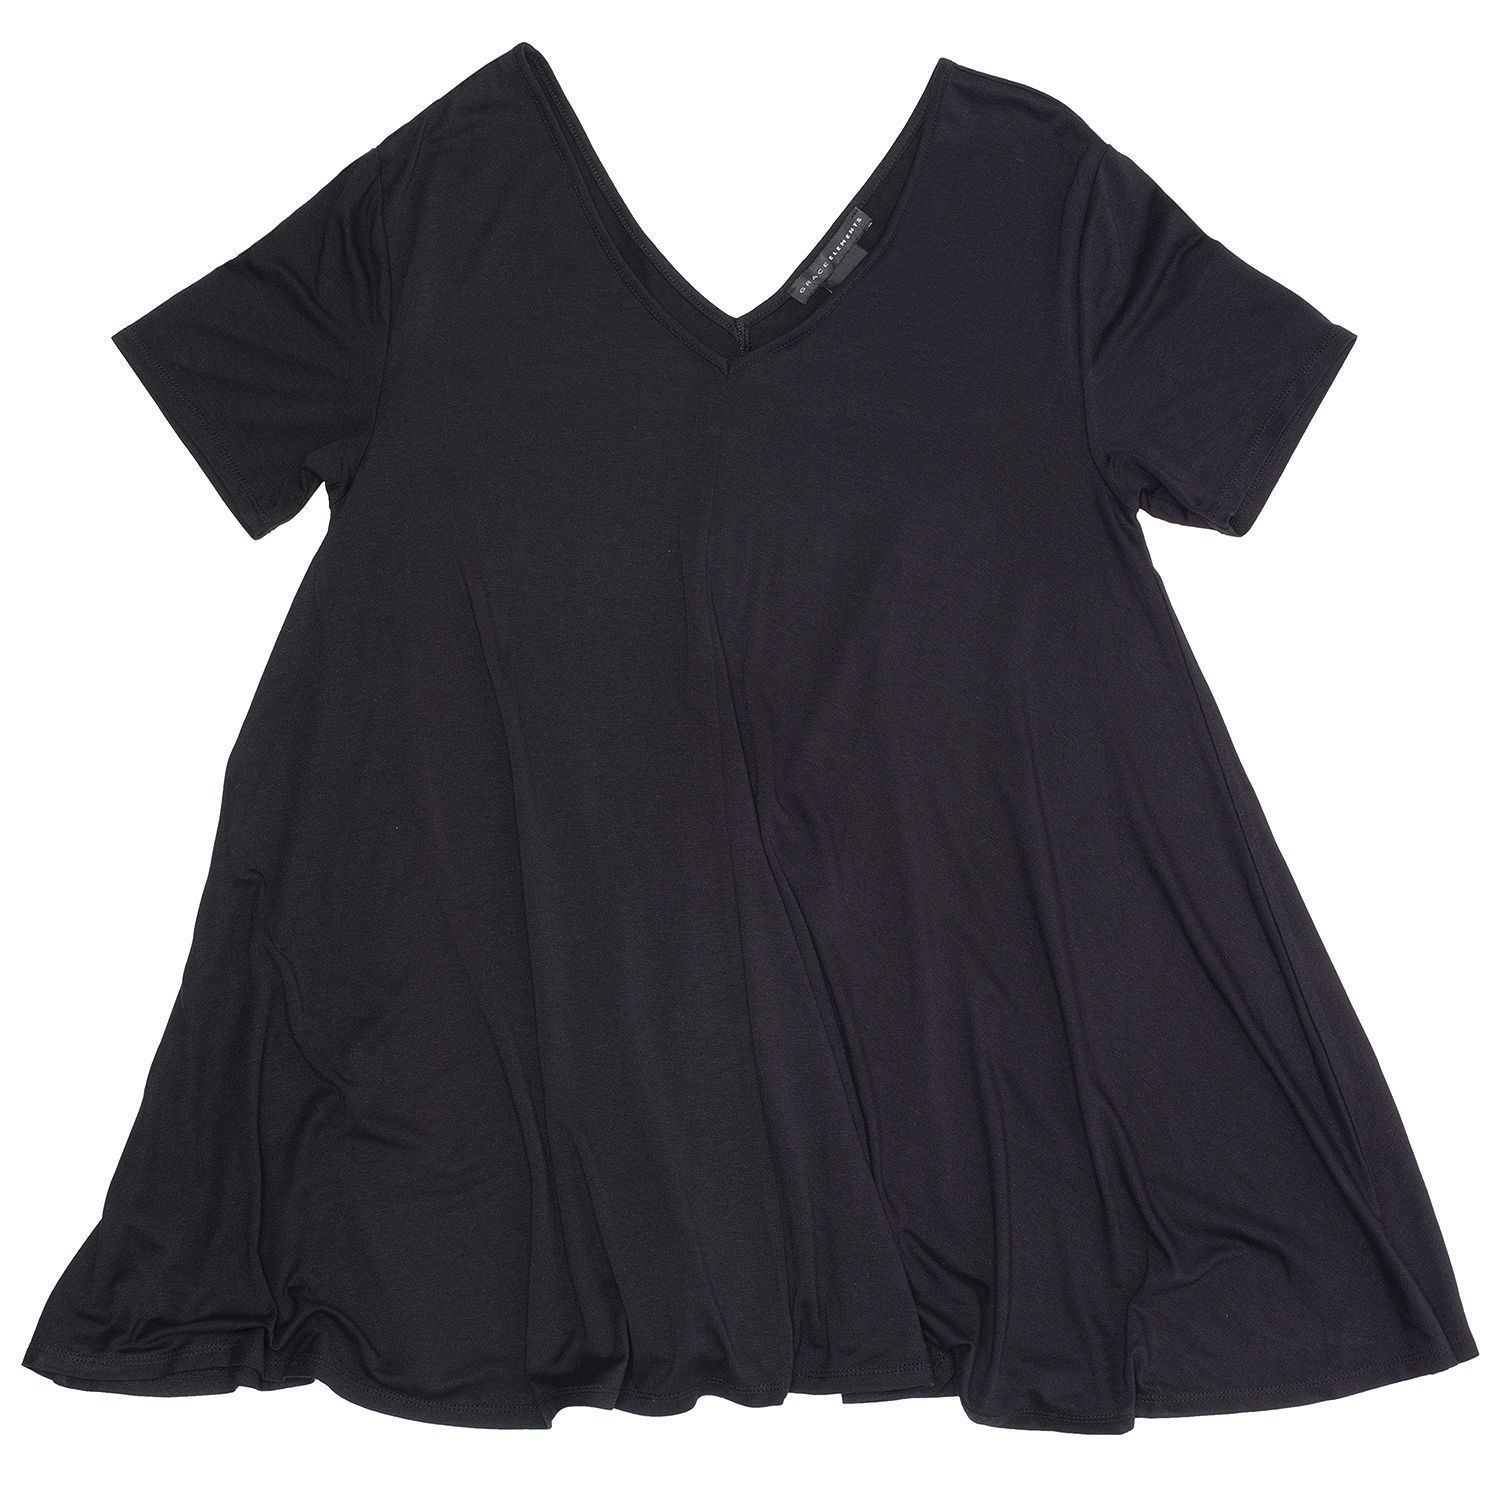 Grace Elements Flowy Swing Top BLACK  Women's Sz. S-M NWT MSPR$48